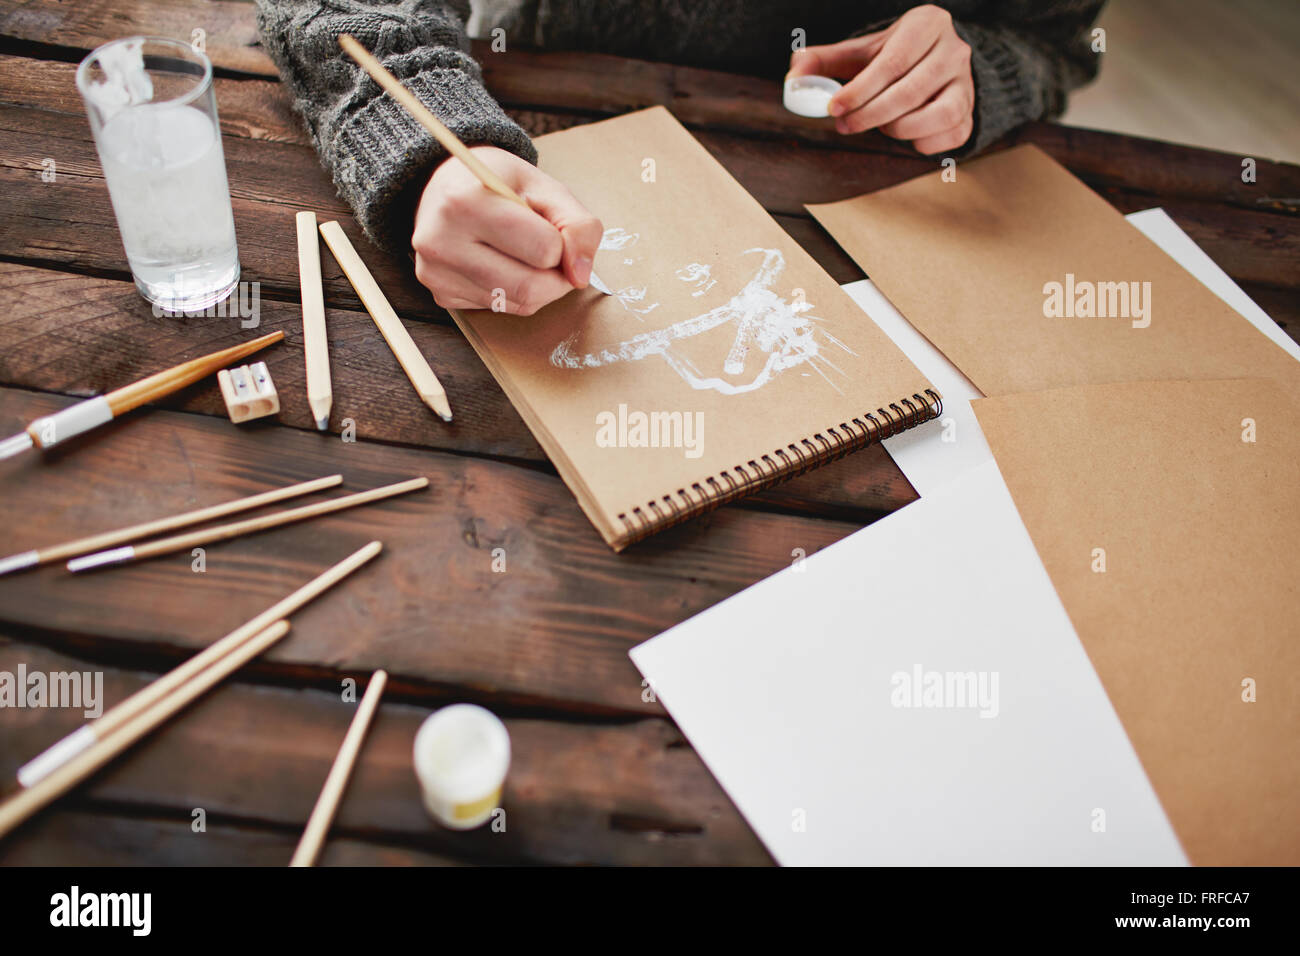 Drawing with white gouache - Stock Image